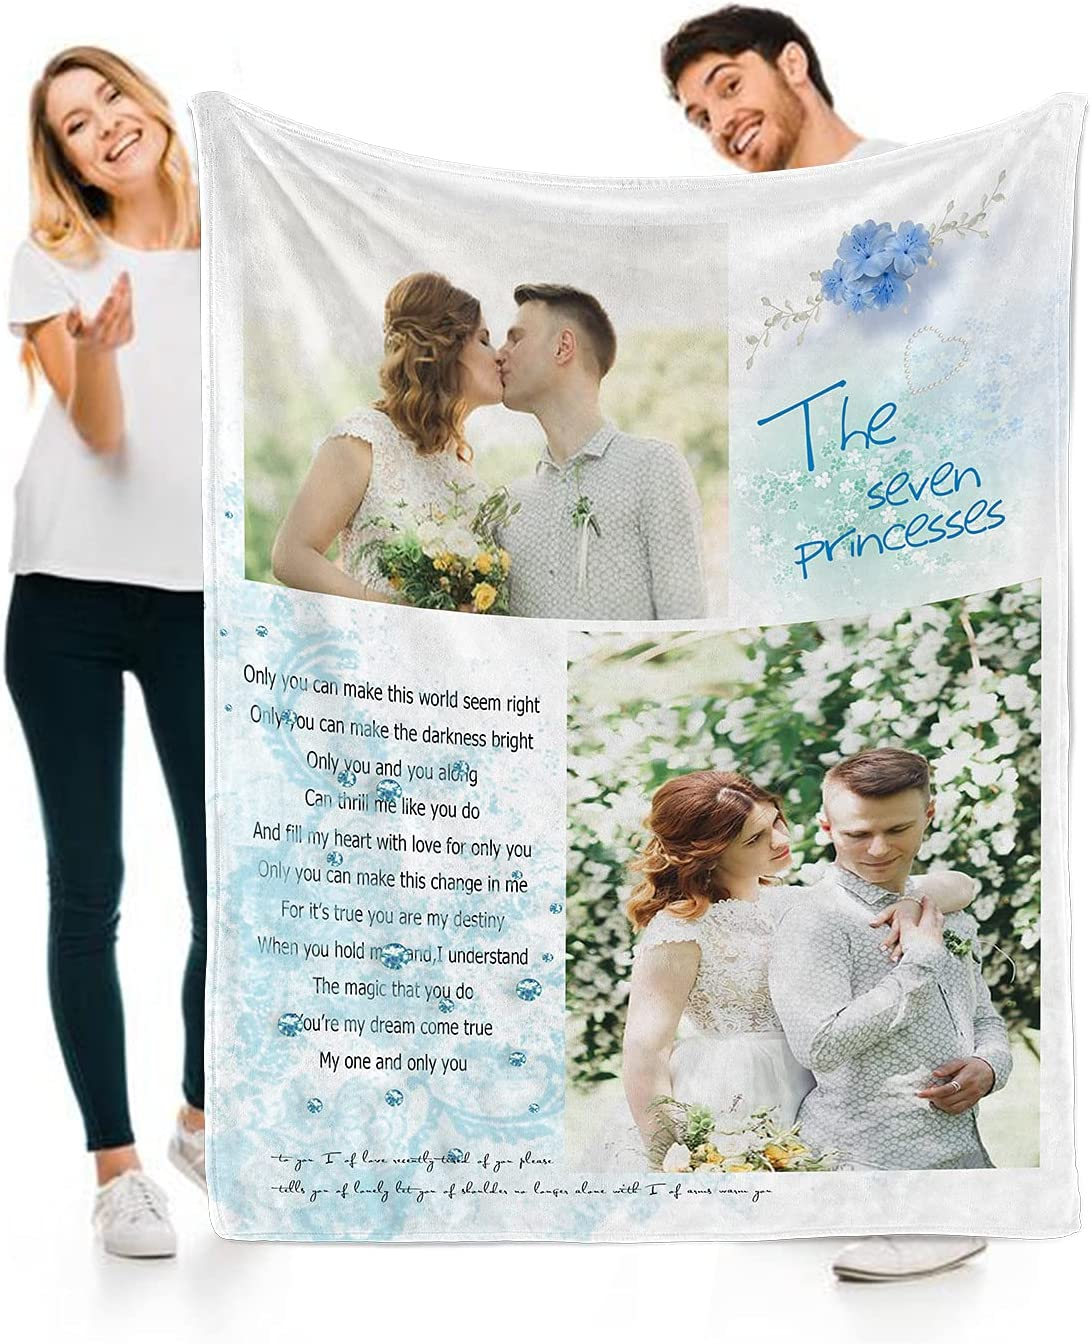 Custom Photo Blanket with Customized Bla Japan's largest assortment Picture Collages Ranking integrated 1st place